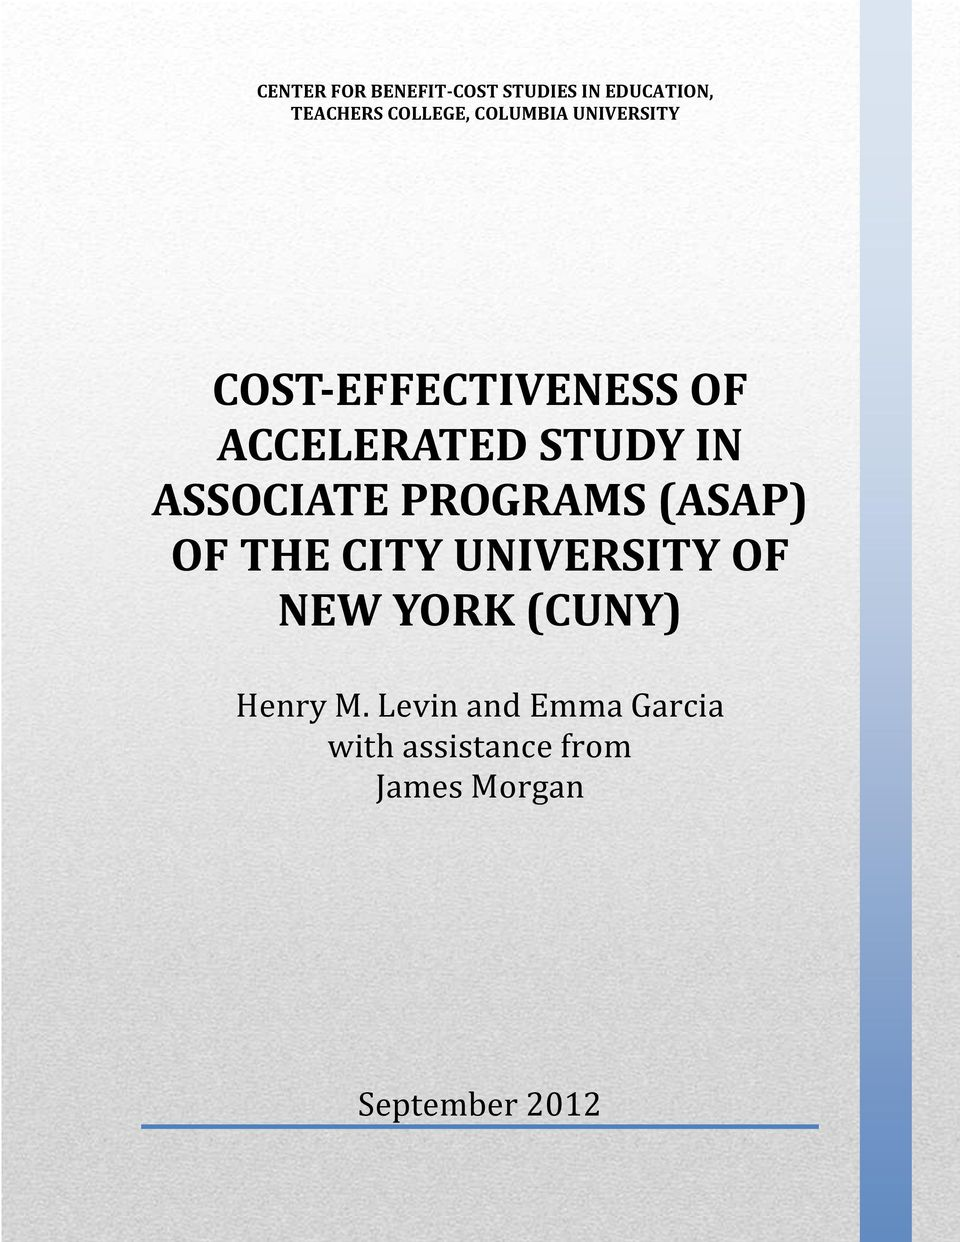 ASSOCIATE PROGRAMS (ASAP) OF THE CITY UNIVERSITY OF NEW YORK (CUNY)